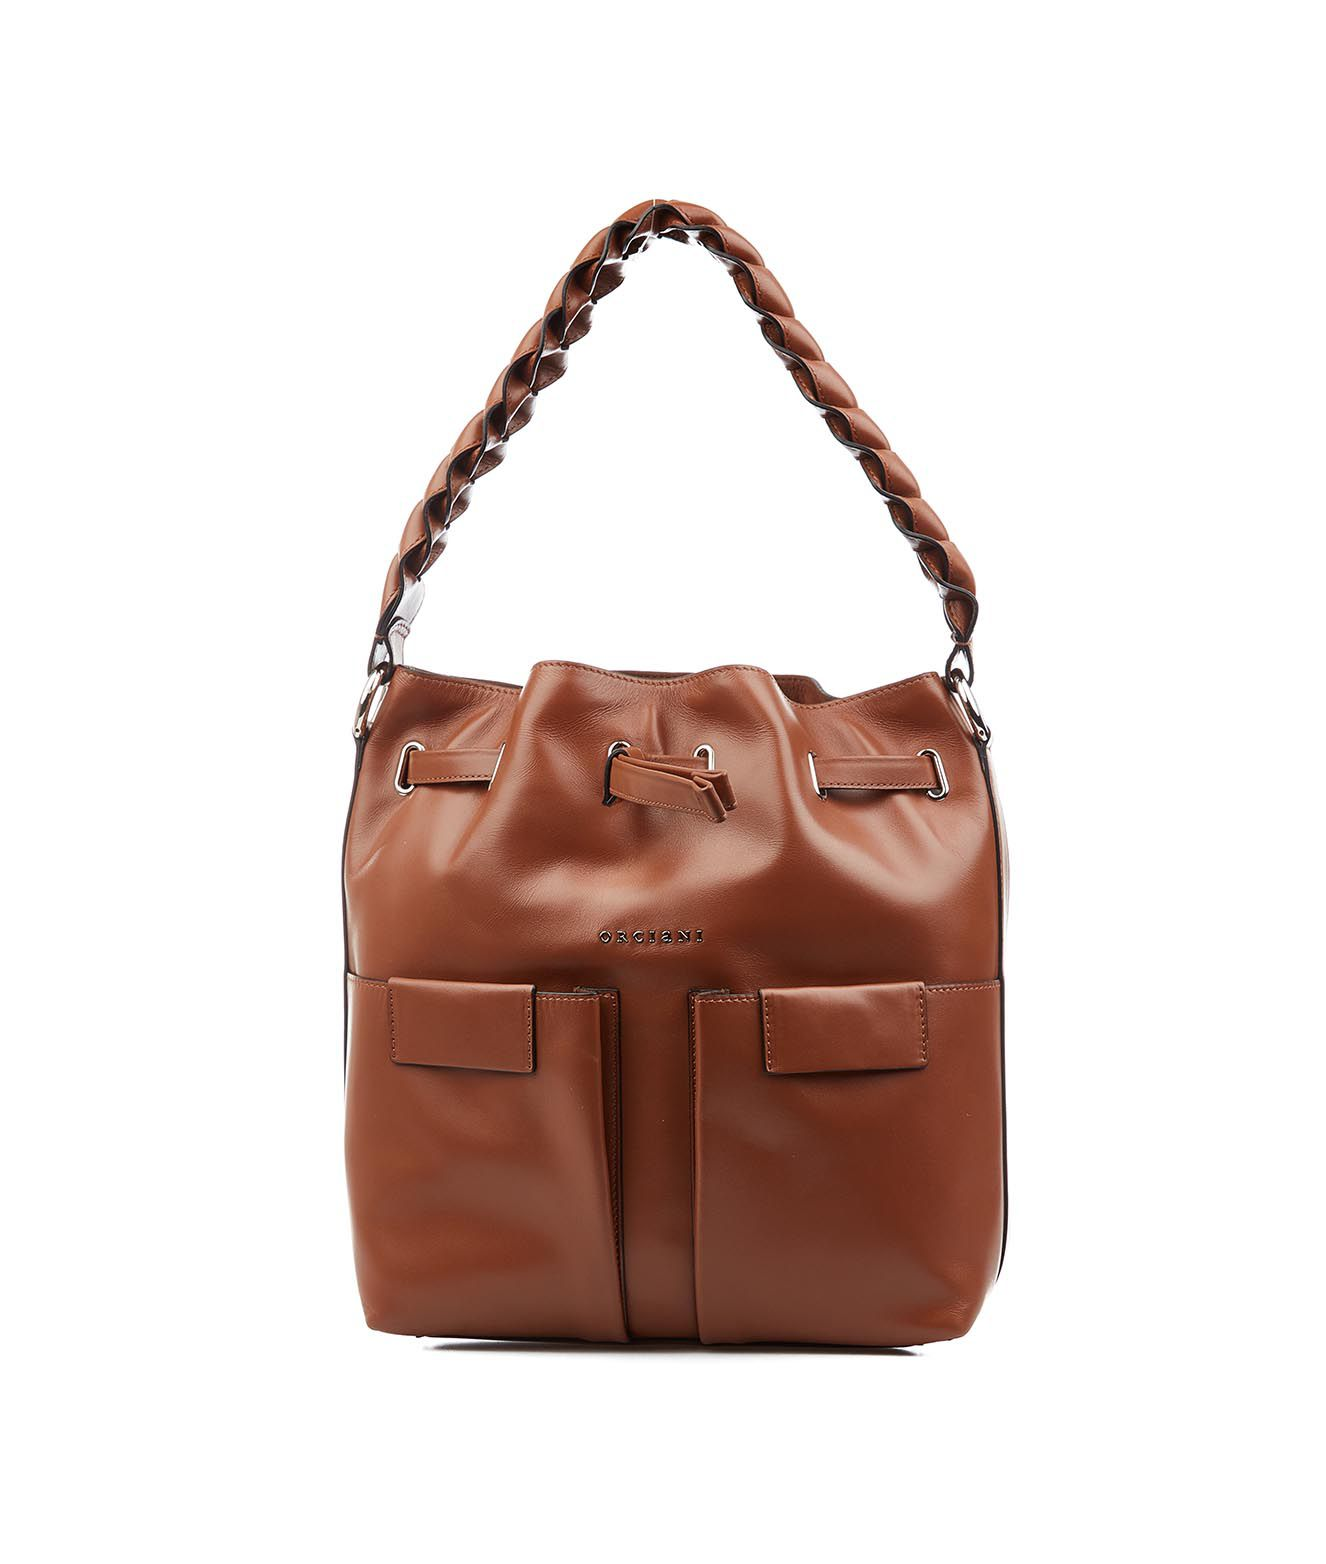 Orciani Handbag With Braid Detail In Cuoio